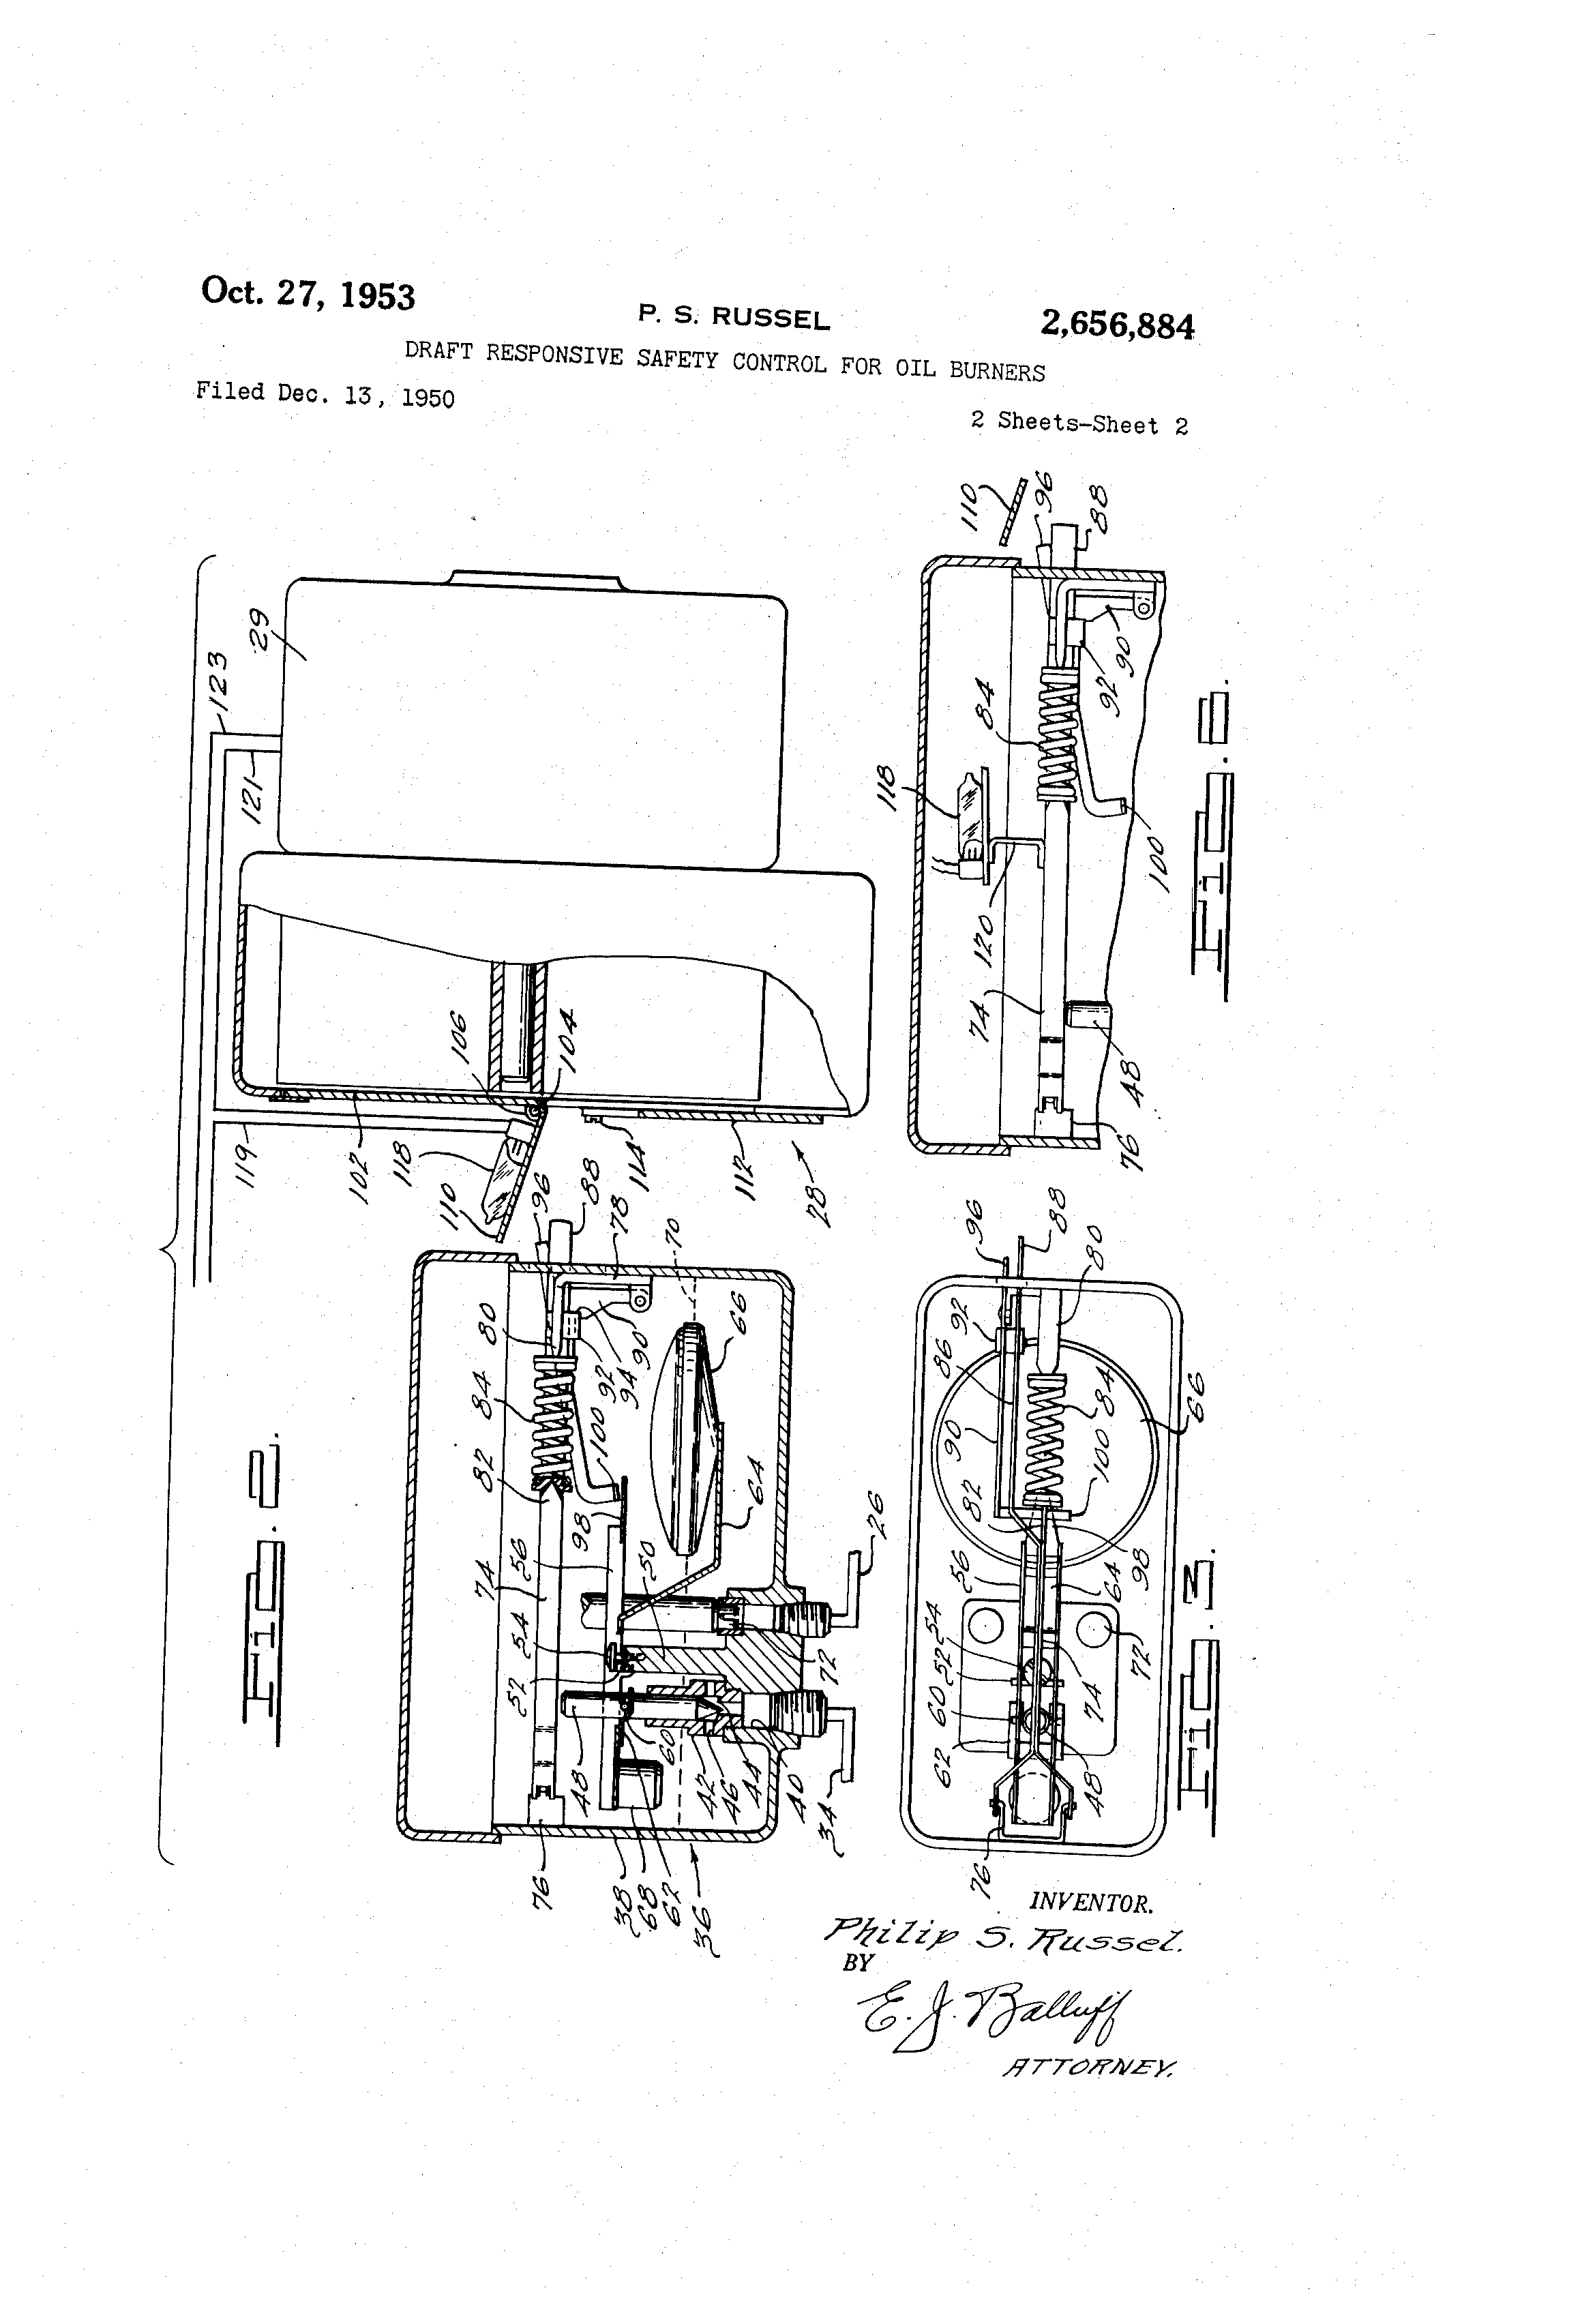 patent us2656884 - draft responsive safety control for oil burners